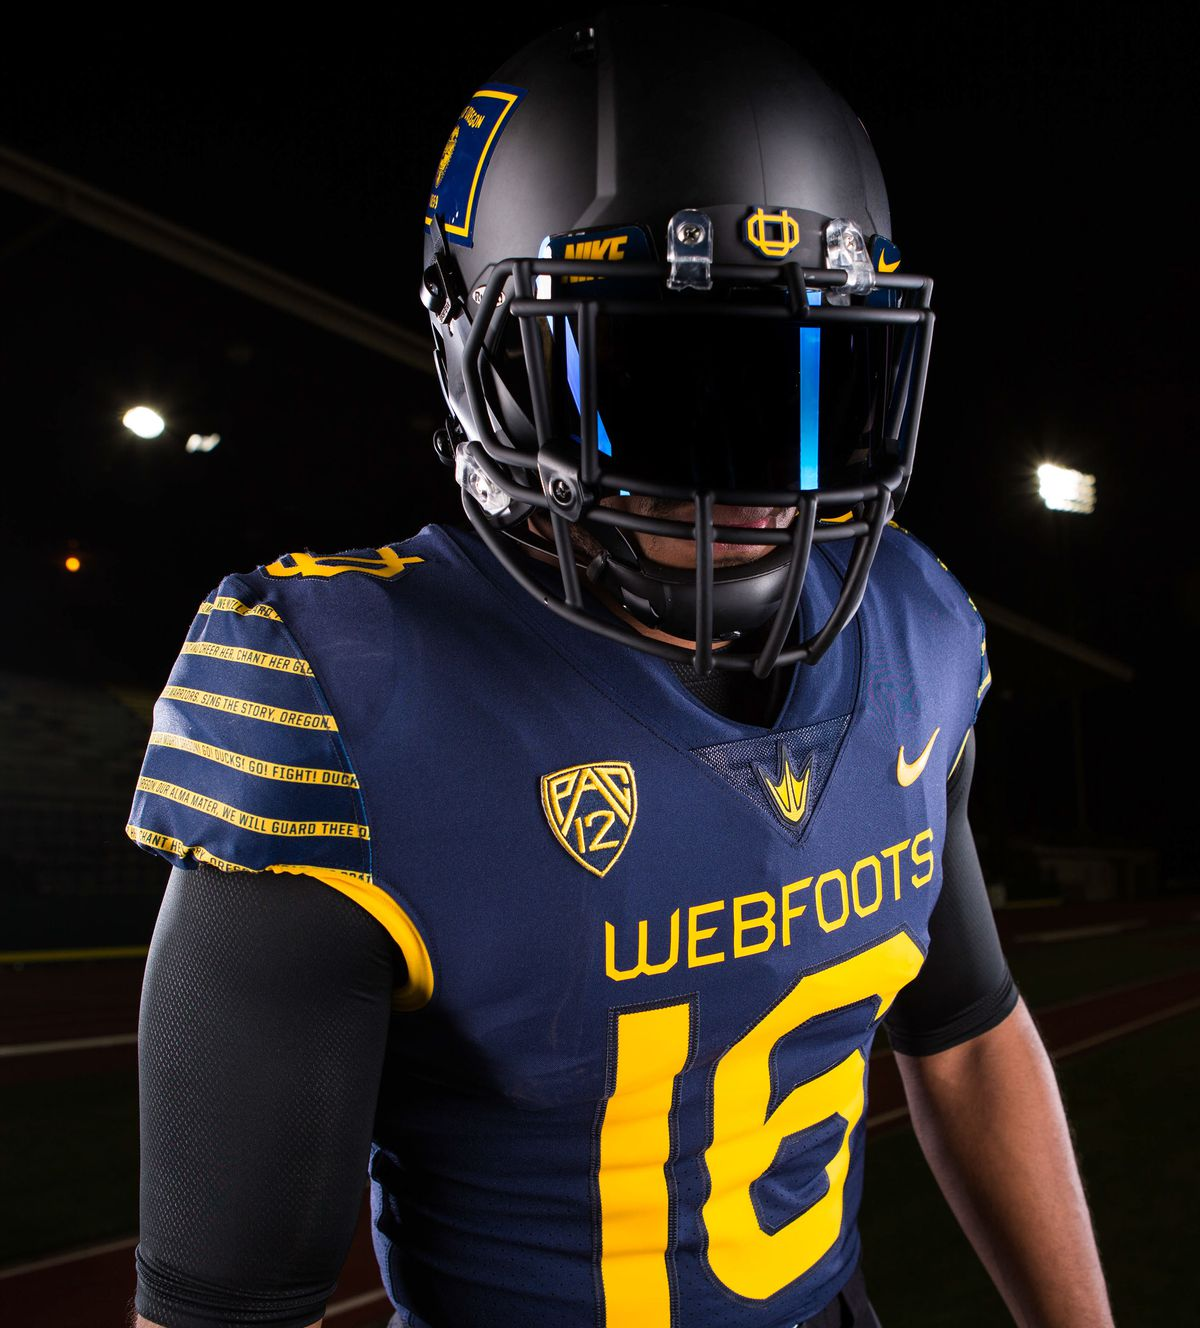 buy online b7b0b 61d13 Why Oregon's wearing blue-and-gold uniforms that say ...